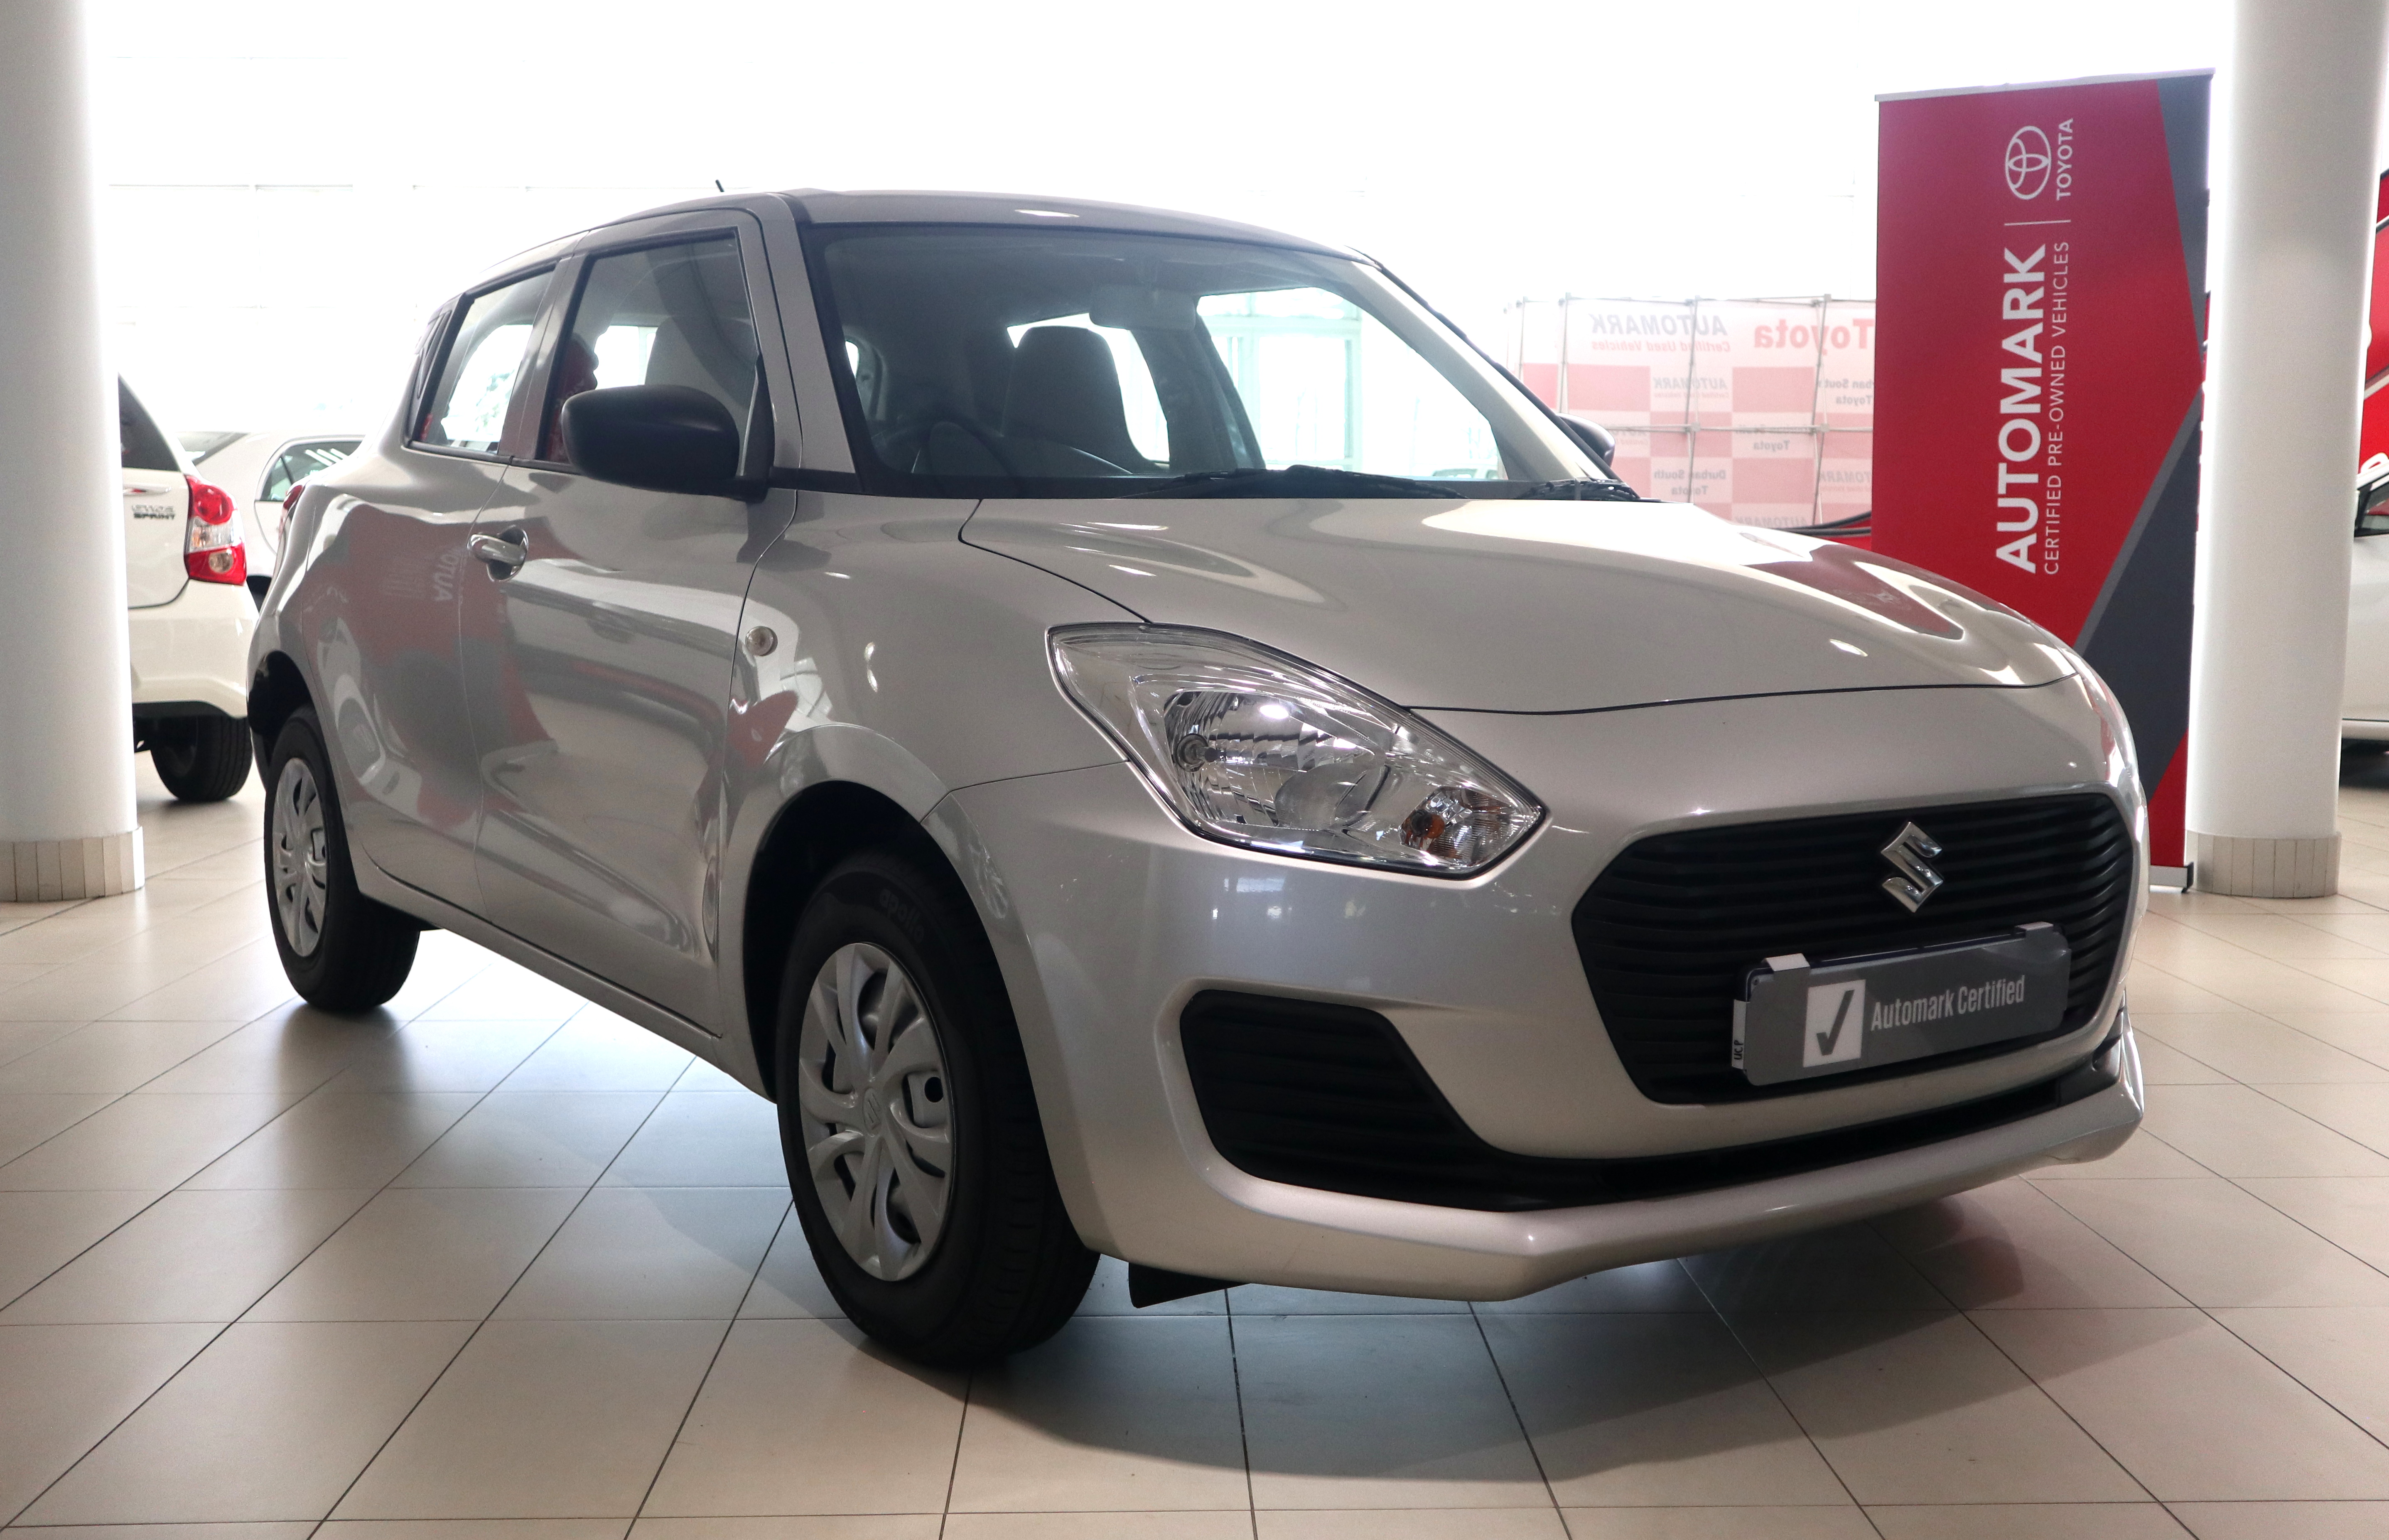 SUZUKI SWIFT 1.2 GA - Main